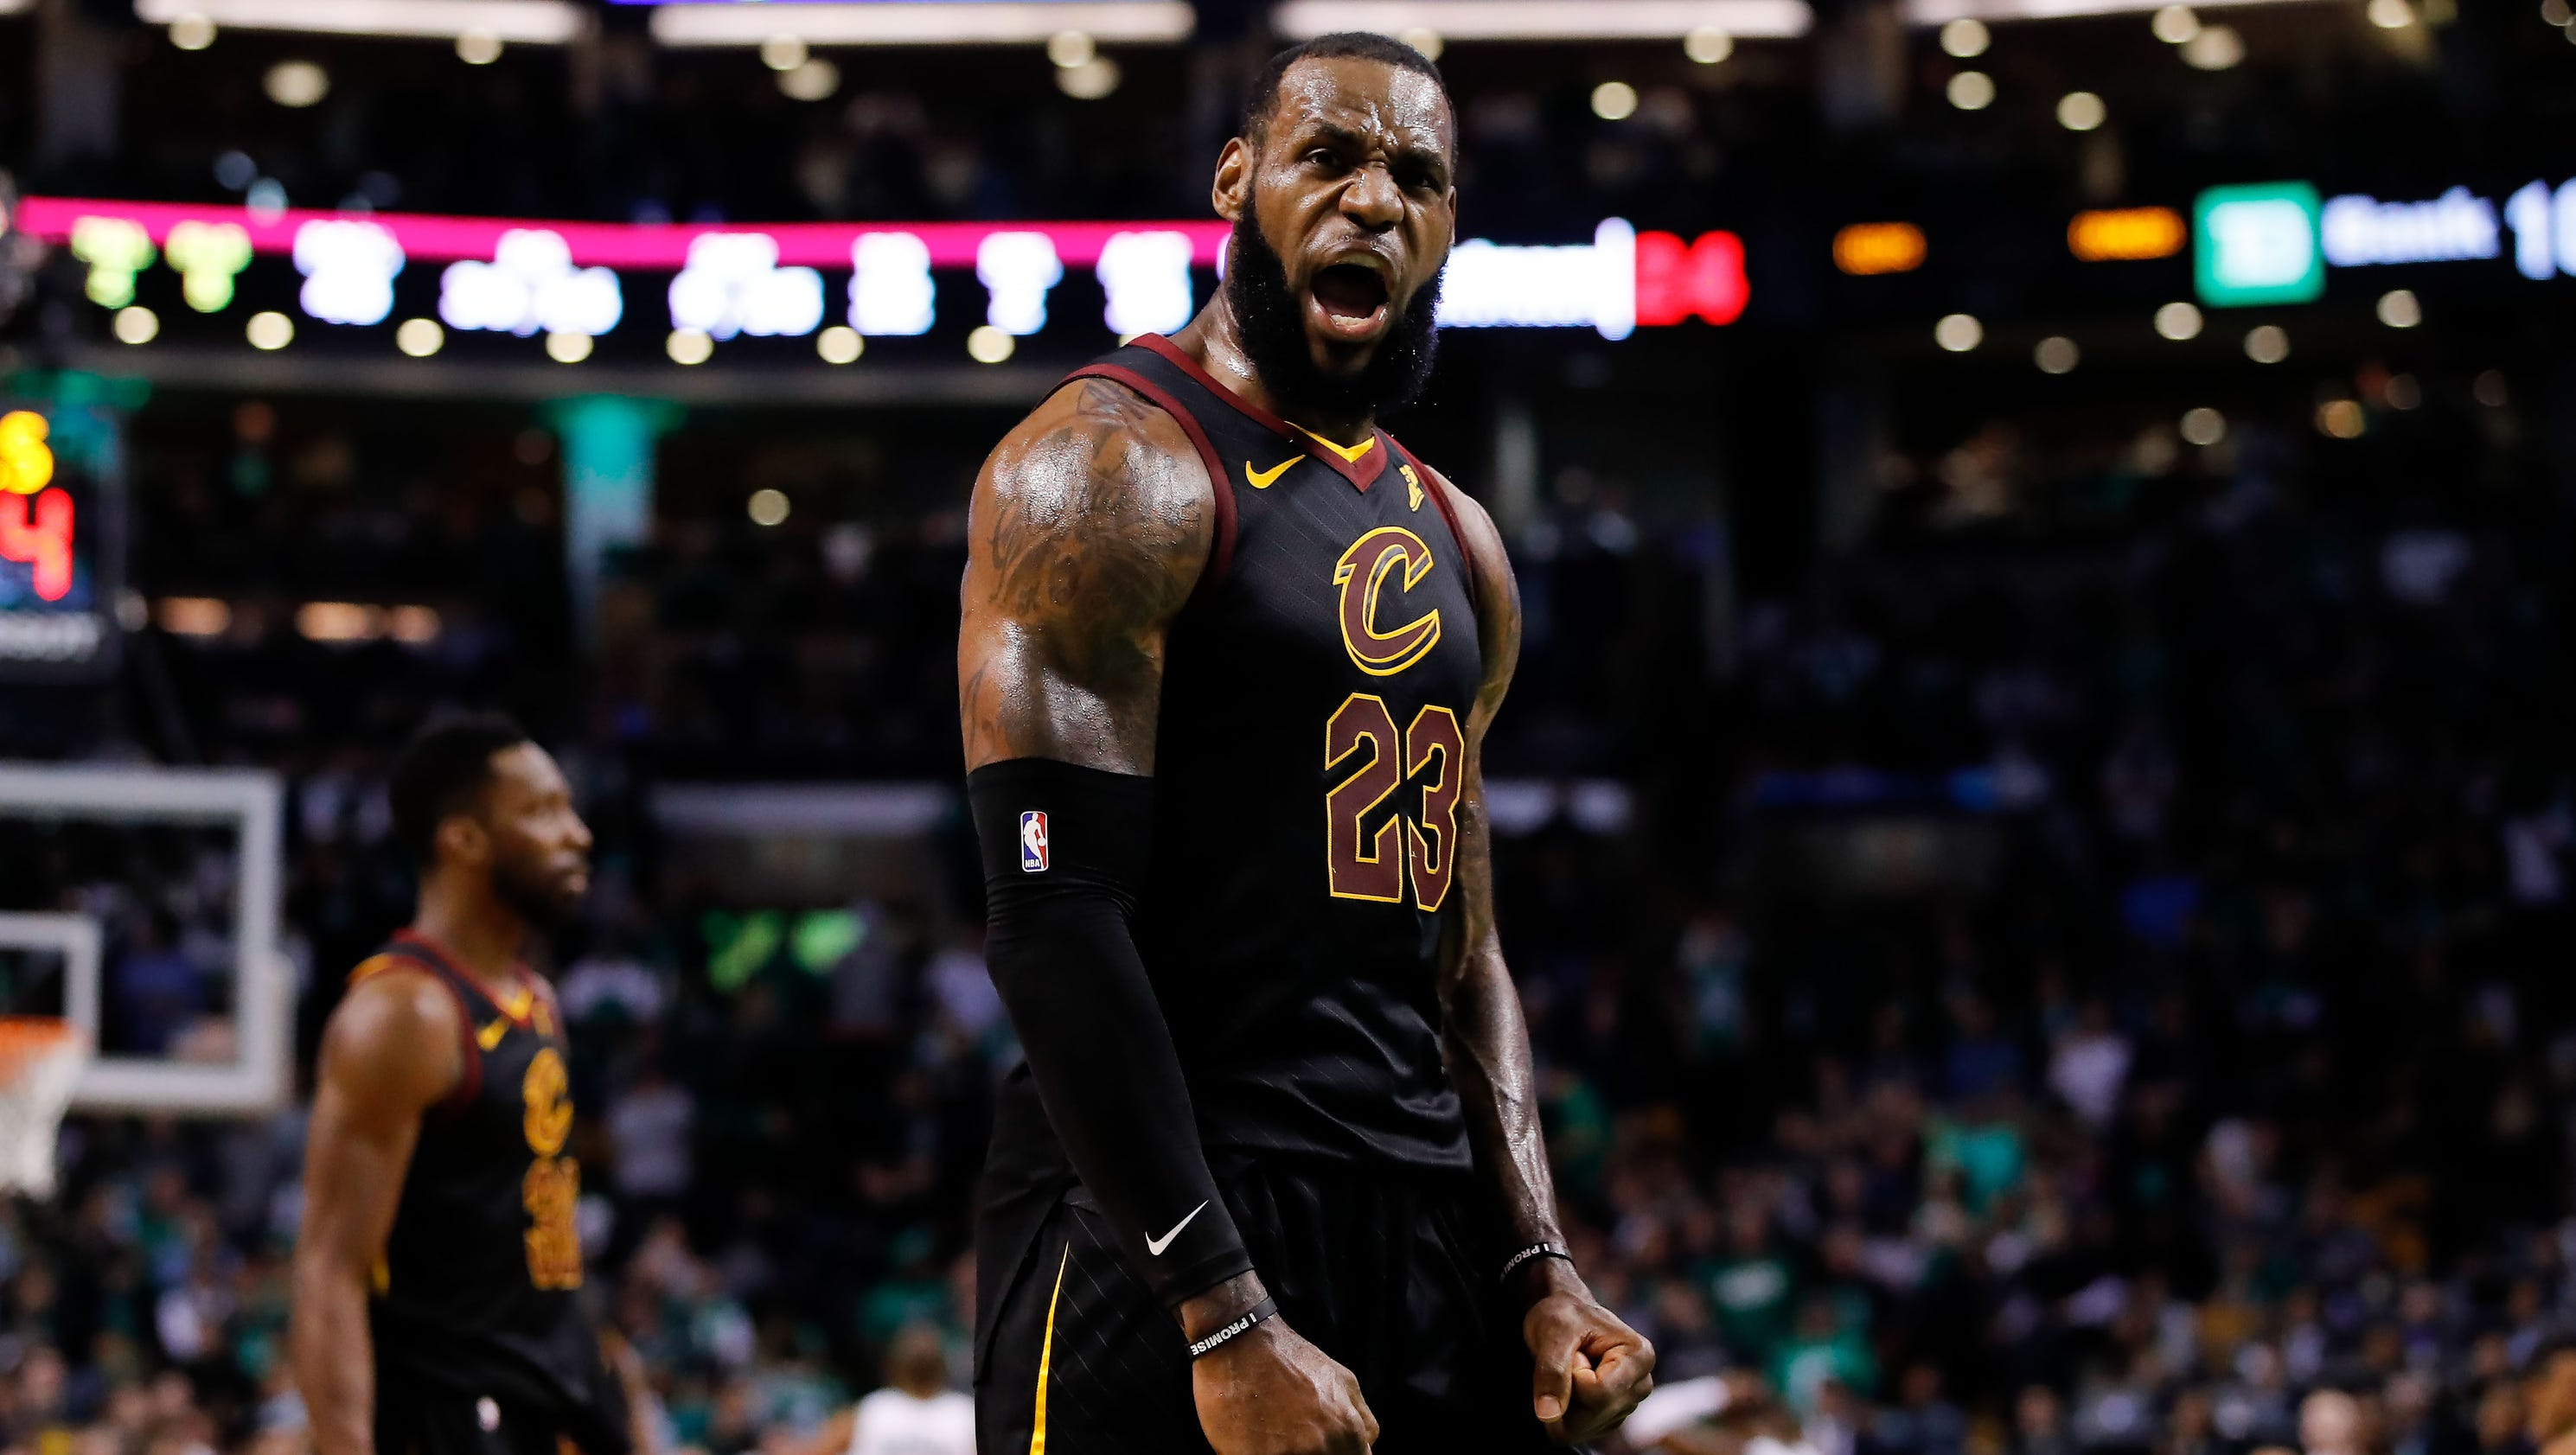 LeBron James powers Cavs past Celtics in Game 7 to reach NBA Finals